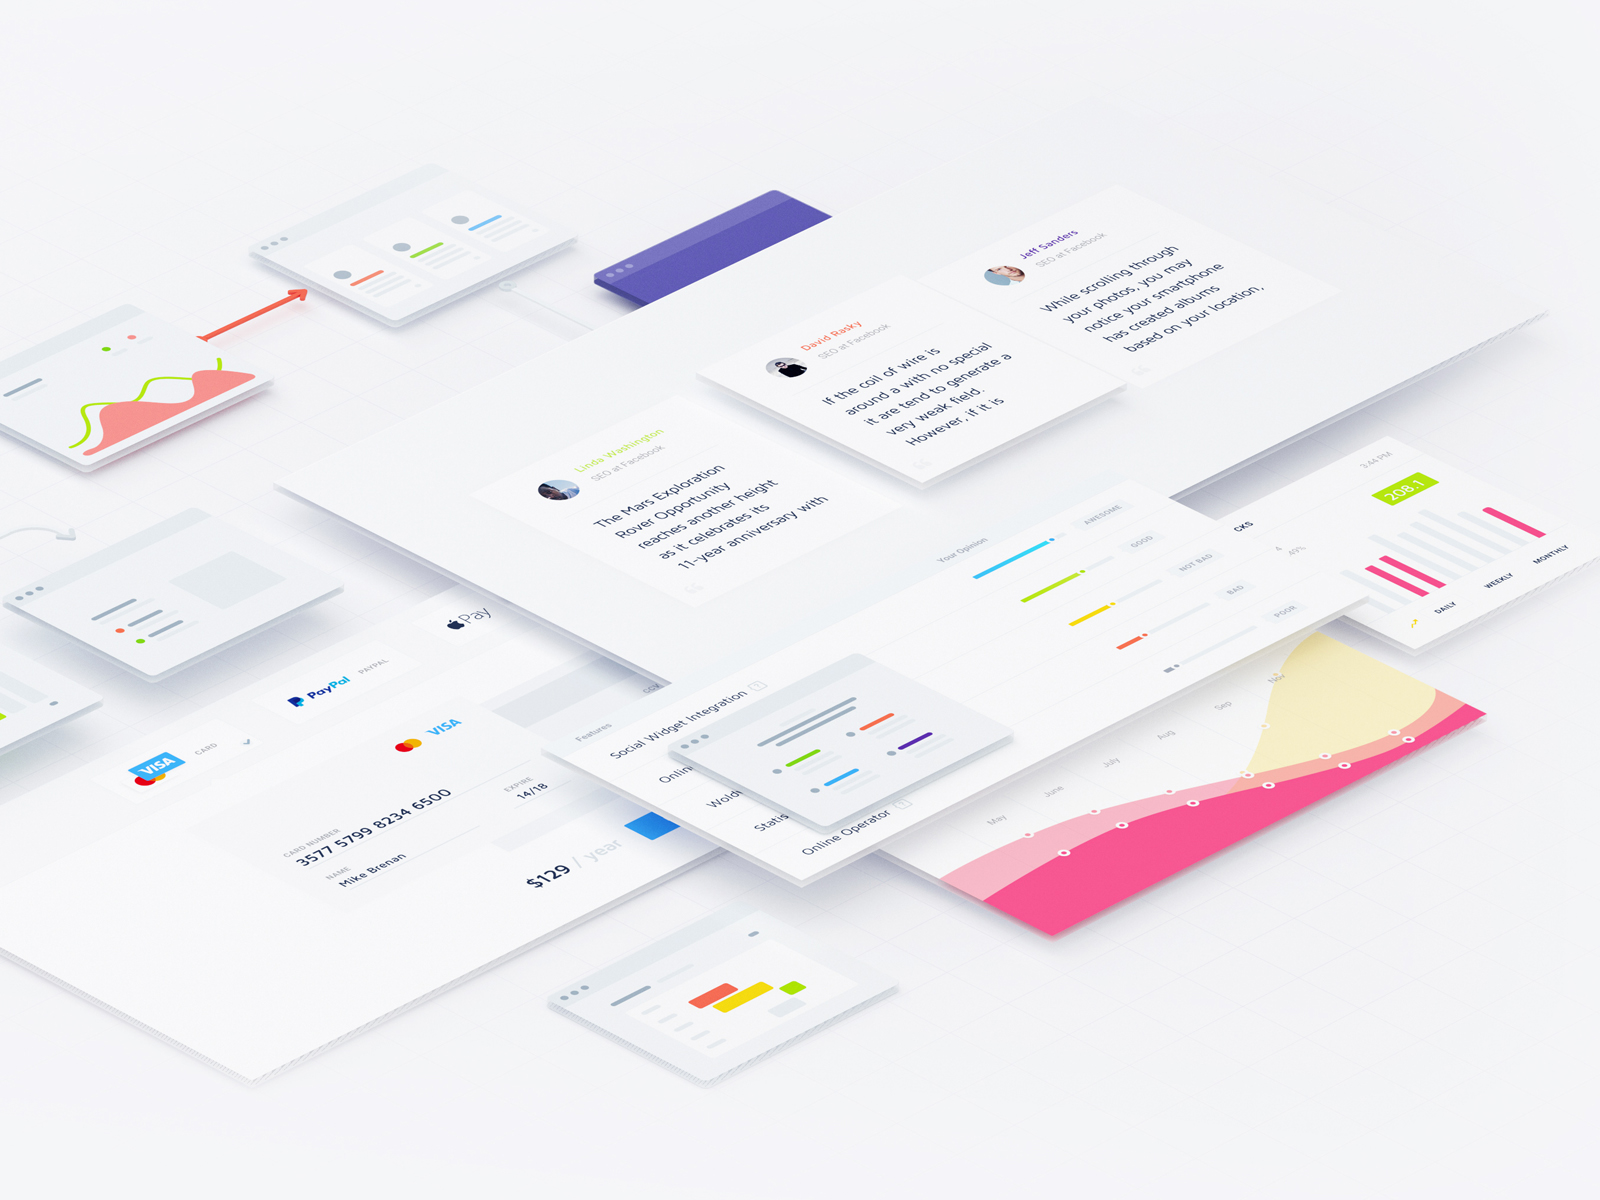 High quality UI/UX tool  for webservices